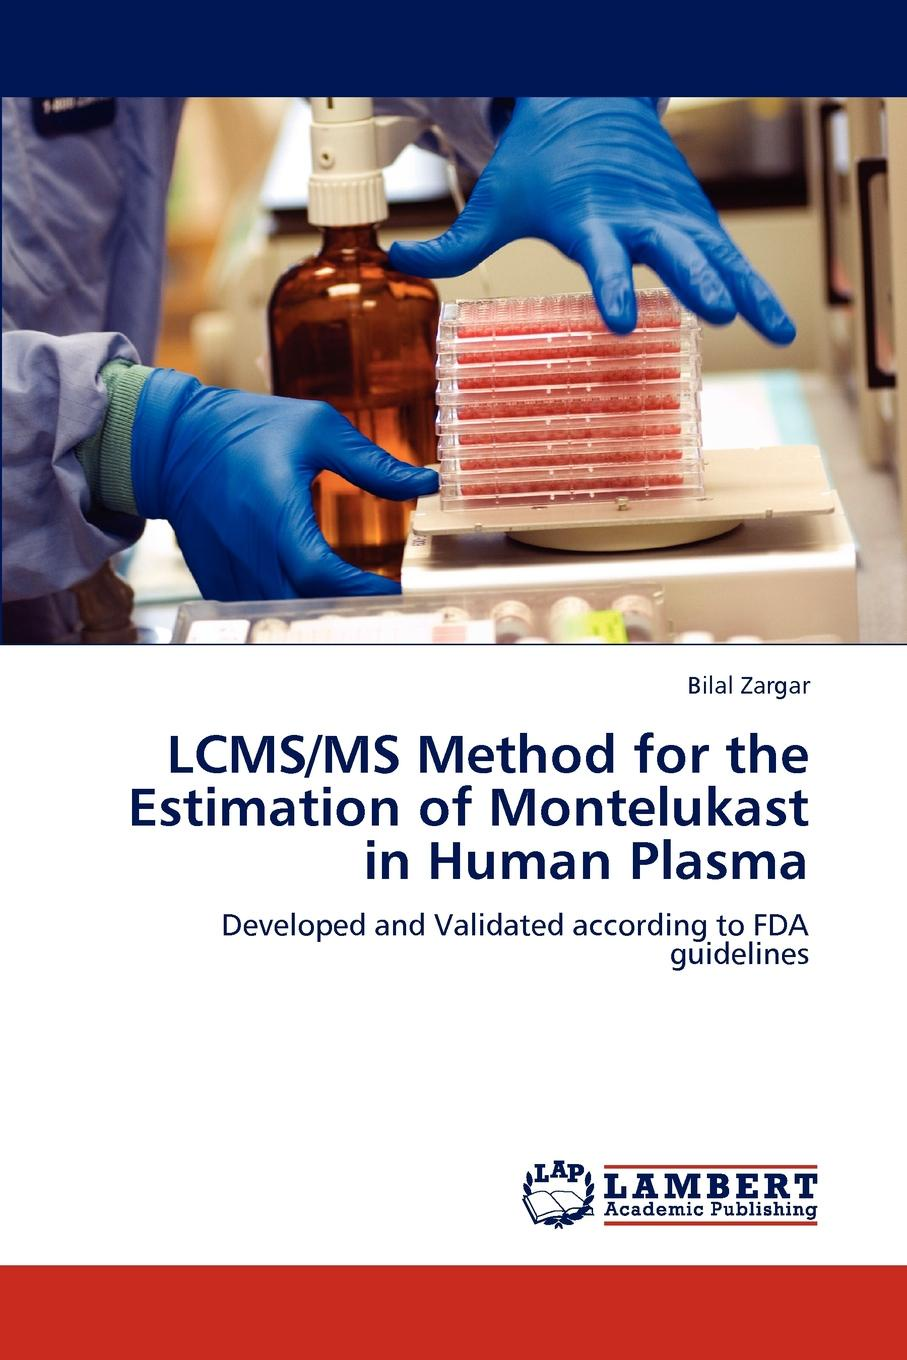 Bilal Zargar Lcms/MS Method for the Estimation of Montelukast in Human Plasma paul gamache h charged aerosol detection for liquid chromatography and related separation techniques